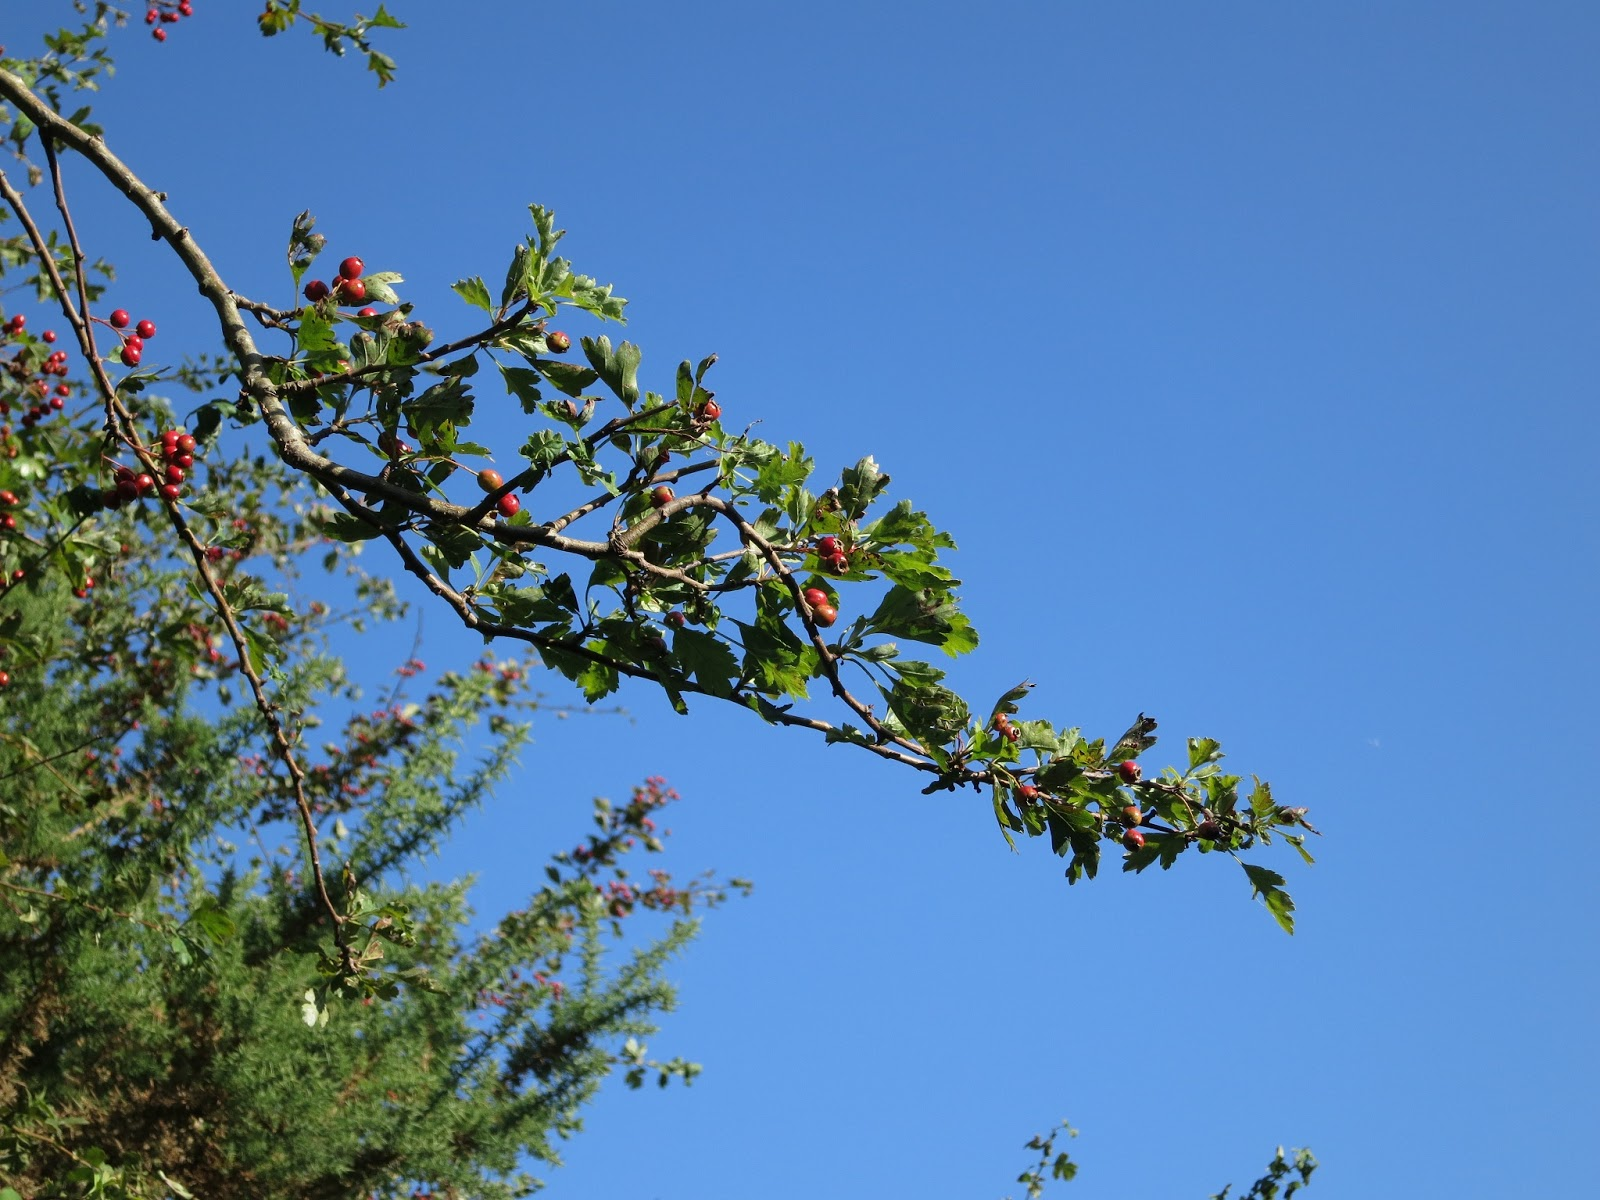 Branch of hawthorn tree with berries against blue sky with gorse in background